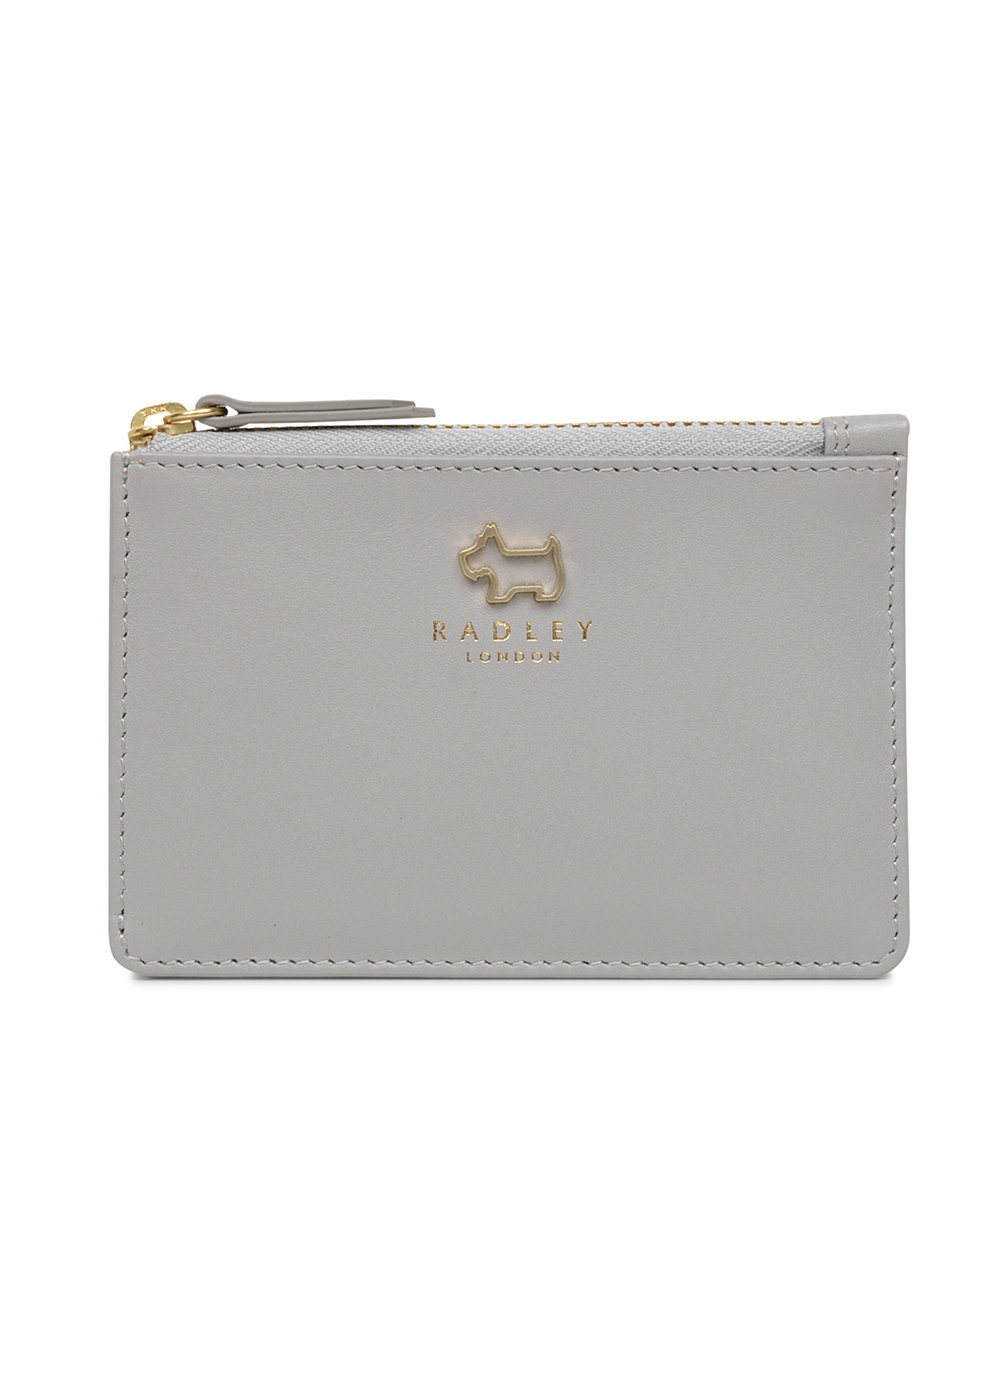 radley_accessories_RDL13811.jpg